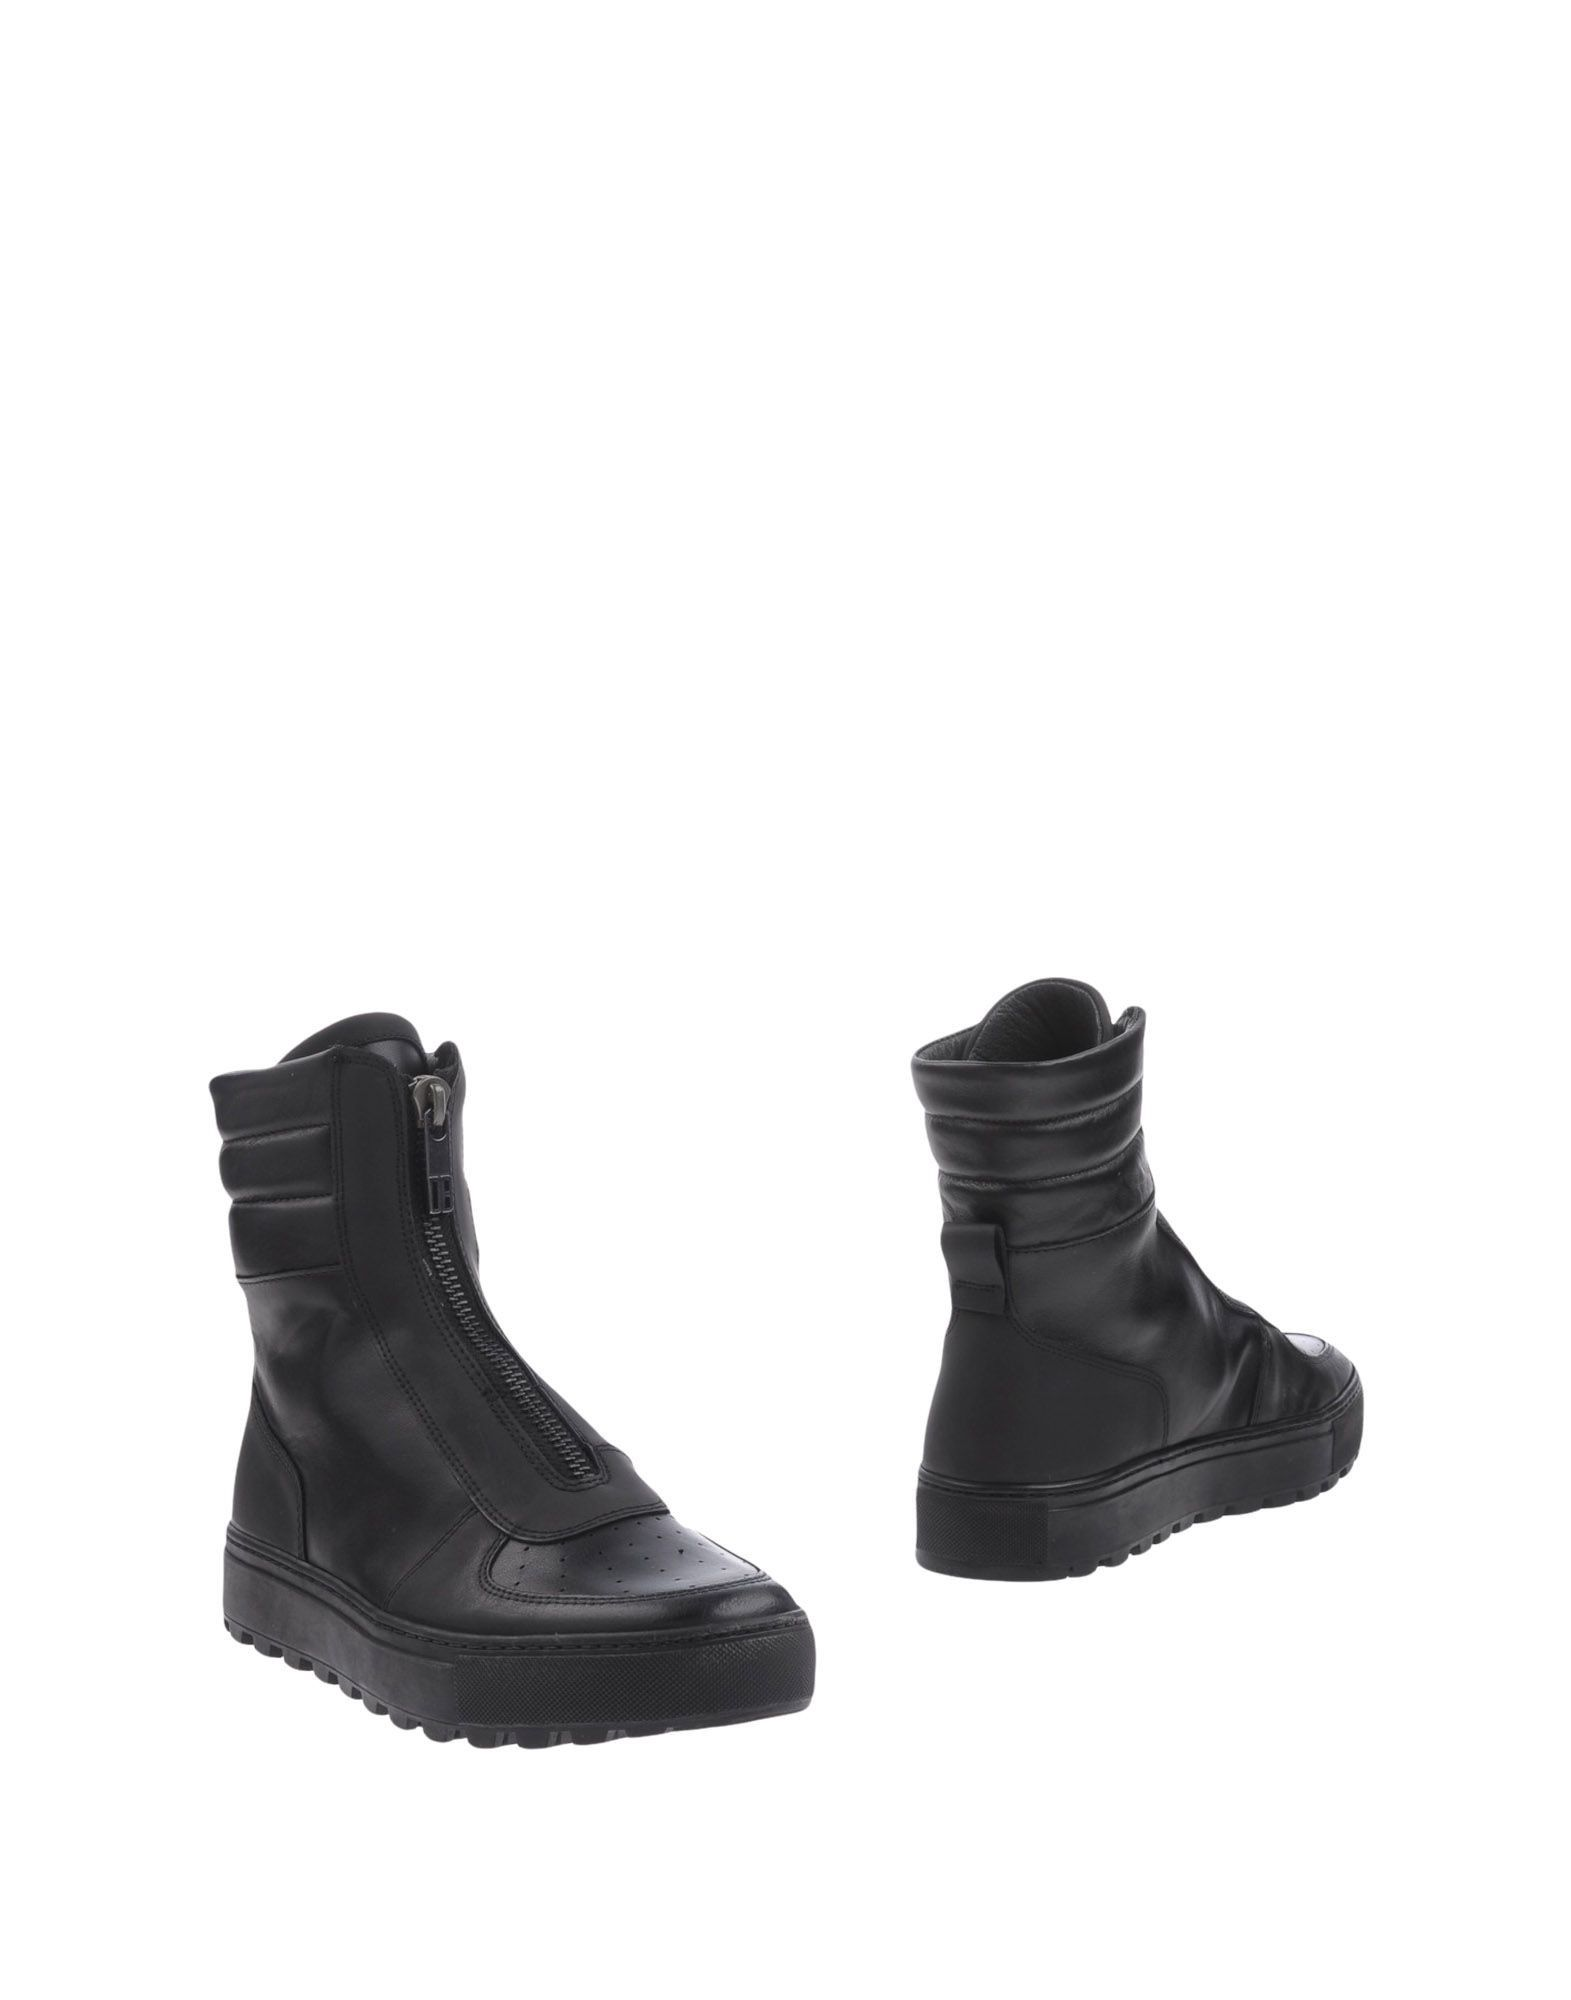 BIKKEMBERGS Ankle Boots. #bikkembergs #shoes #all